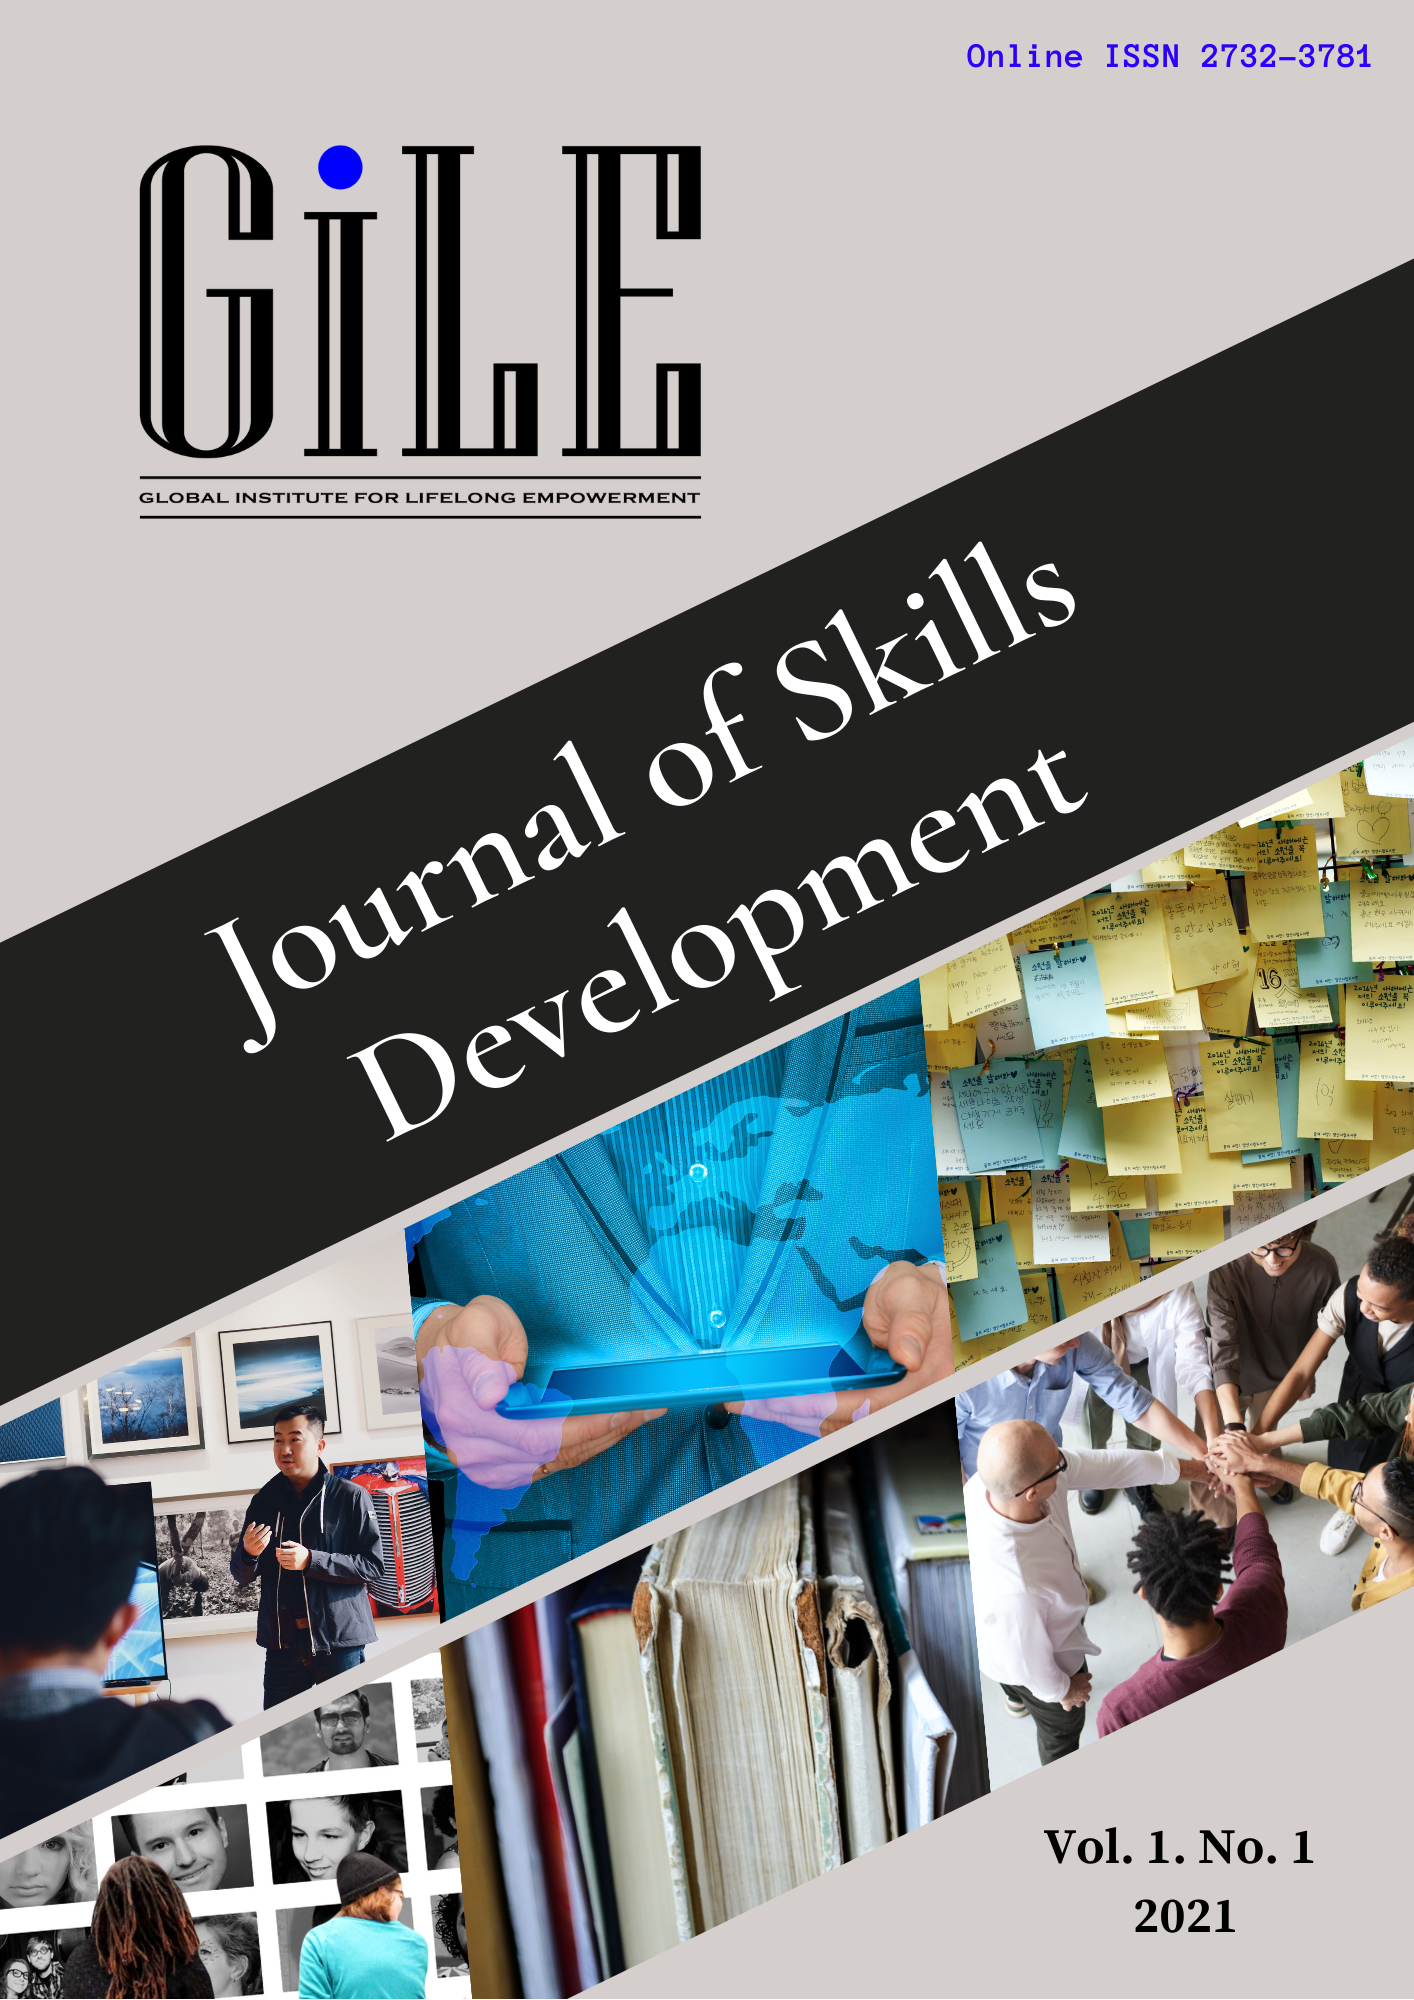 Cover of the GiLE Journal of Skills Development international journal on competency development